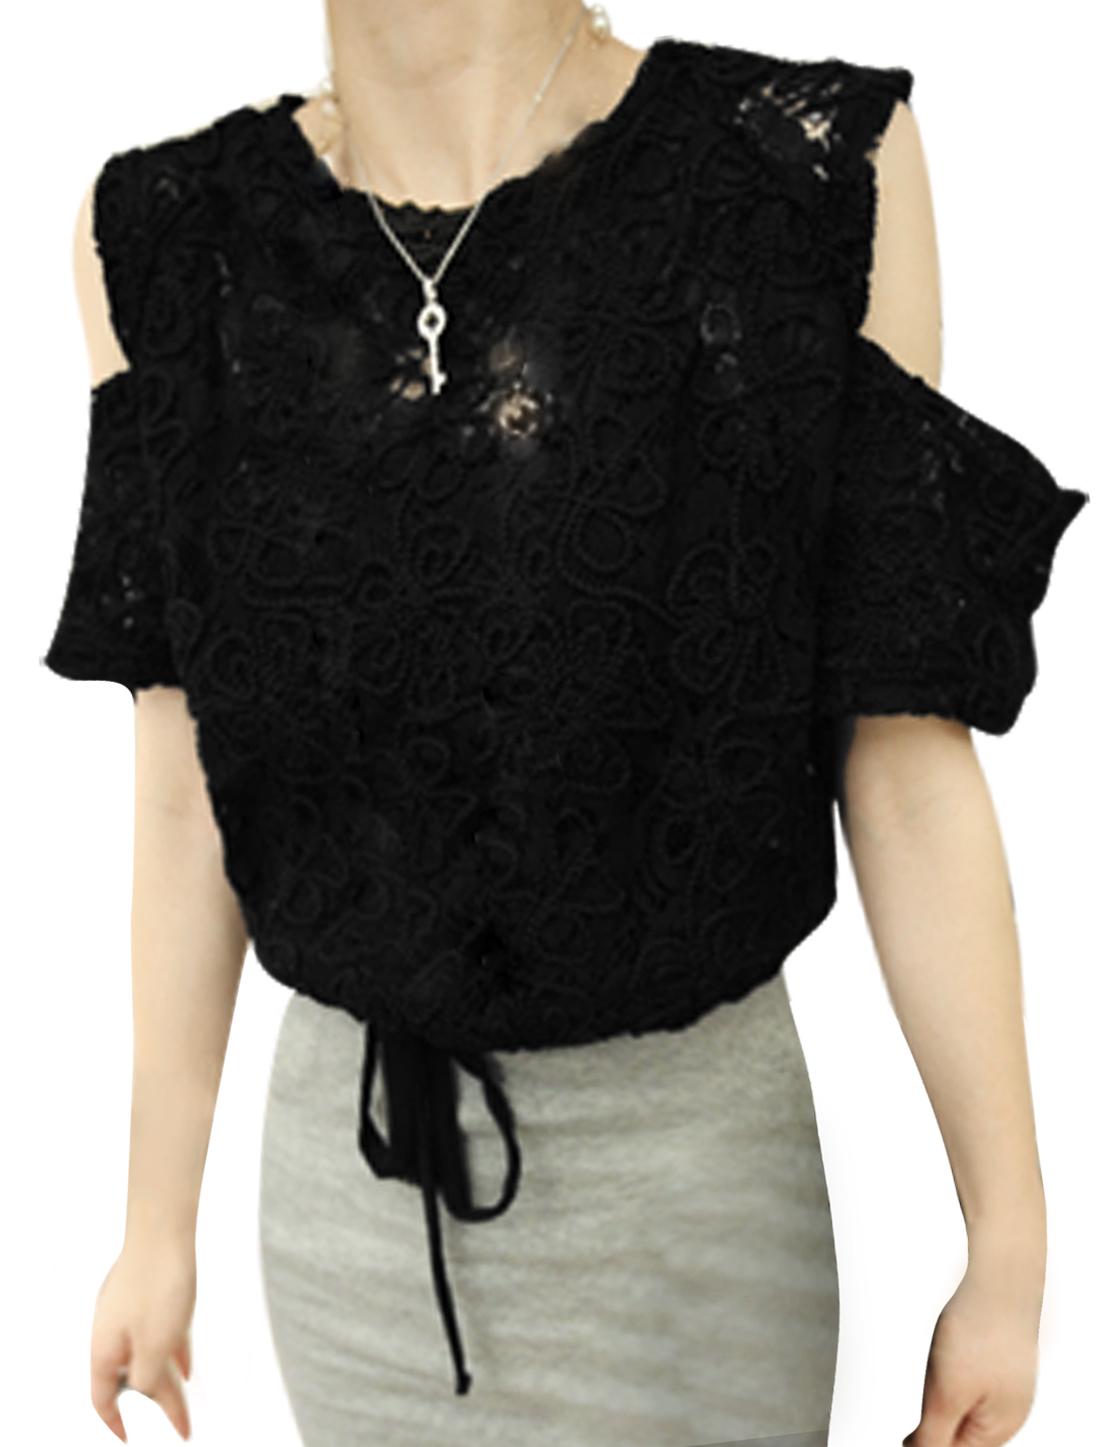 Lady Black Flower Design Cutout Shoulder Short Sleeve Lace Top XS